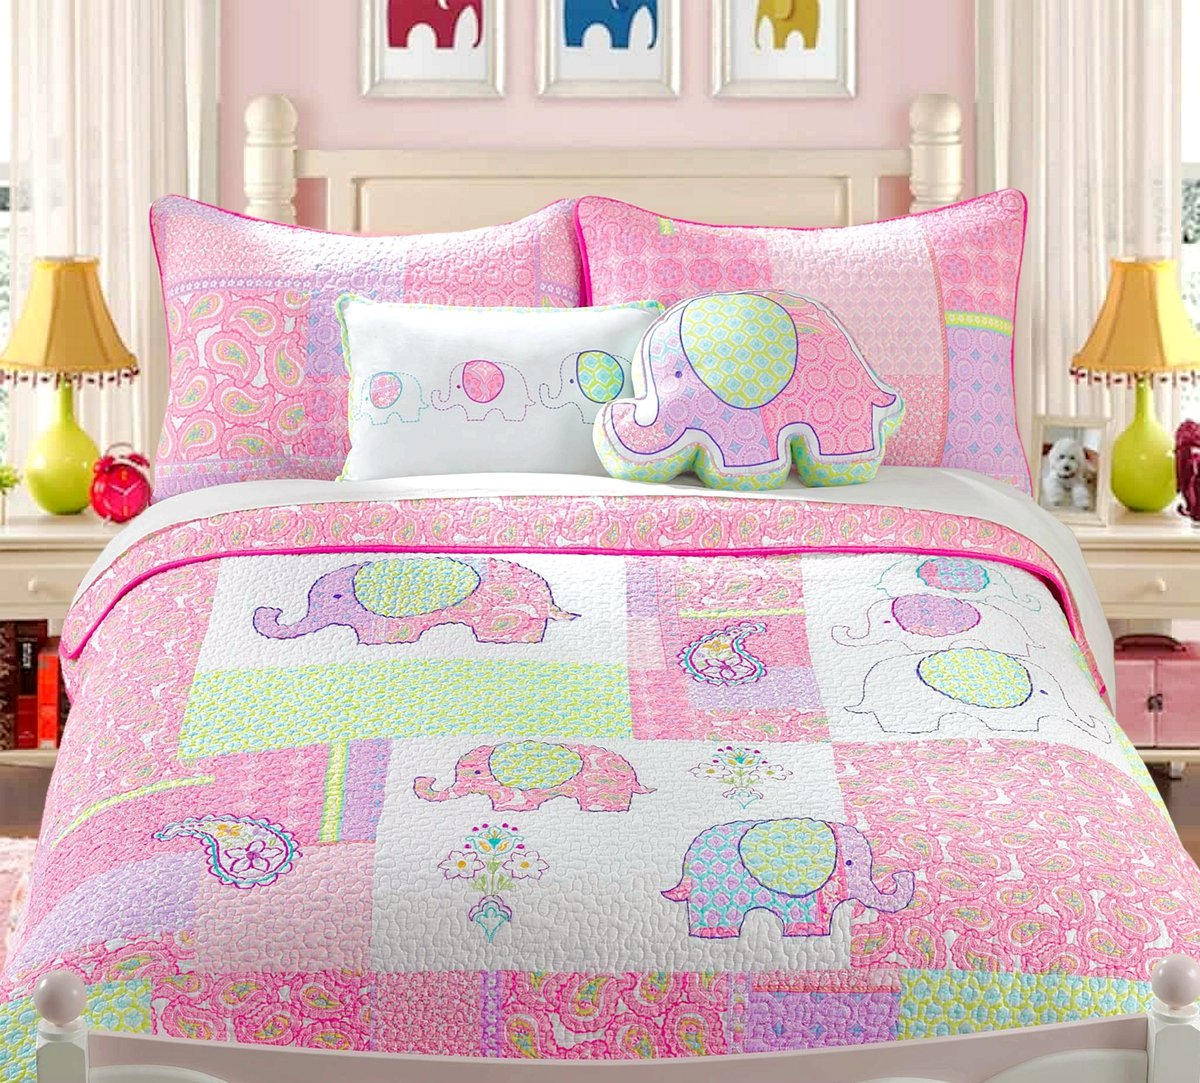 Cozy Line Home Fashions Elephant Bedding Quilt Sets,100% Cotton Pink Green Print Pattern Embroidered Reversible Coverlet, Bedspreads(Pink Set, Full/Queen -3 Piece: 1 Quilt + 2 Standard Shams) by Cozy Line Home Fashions